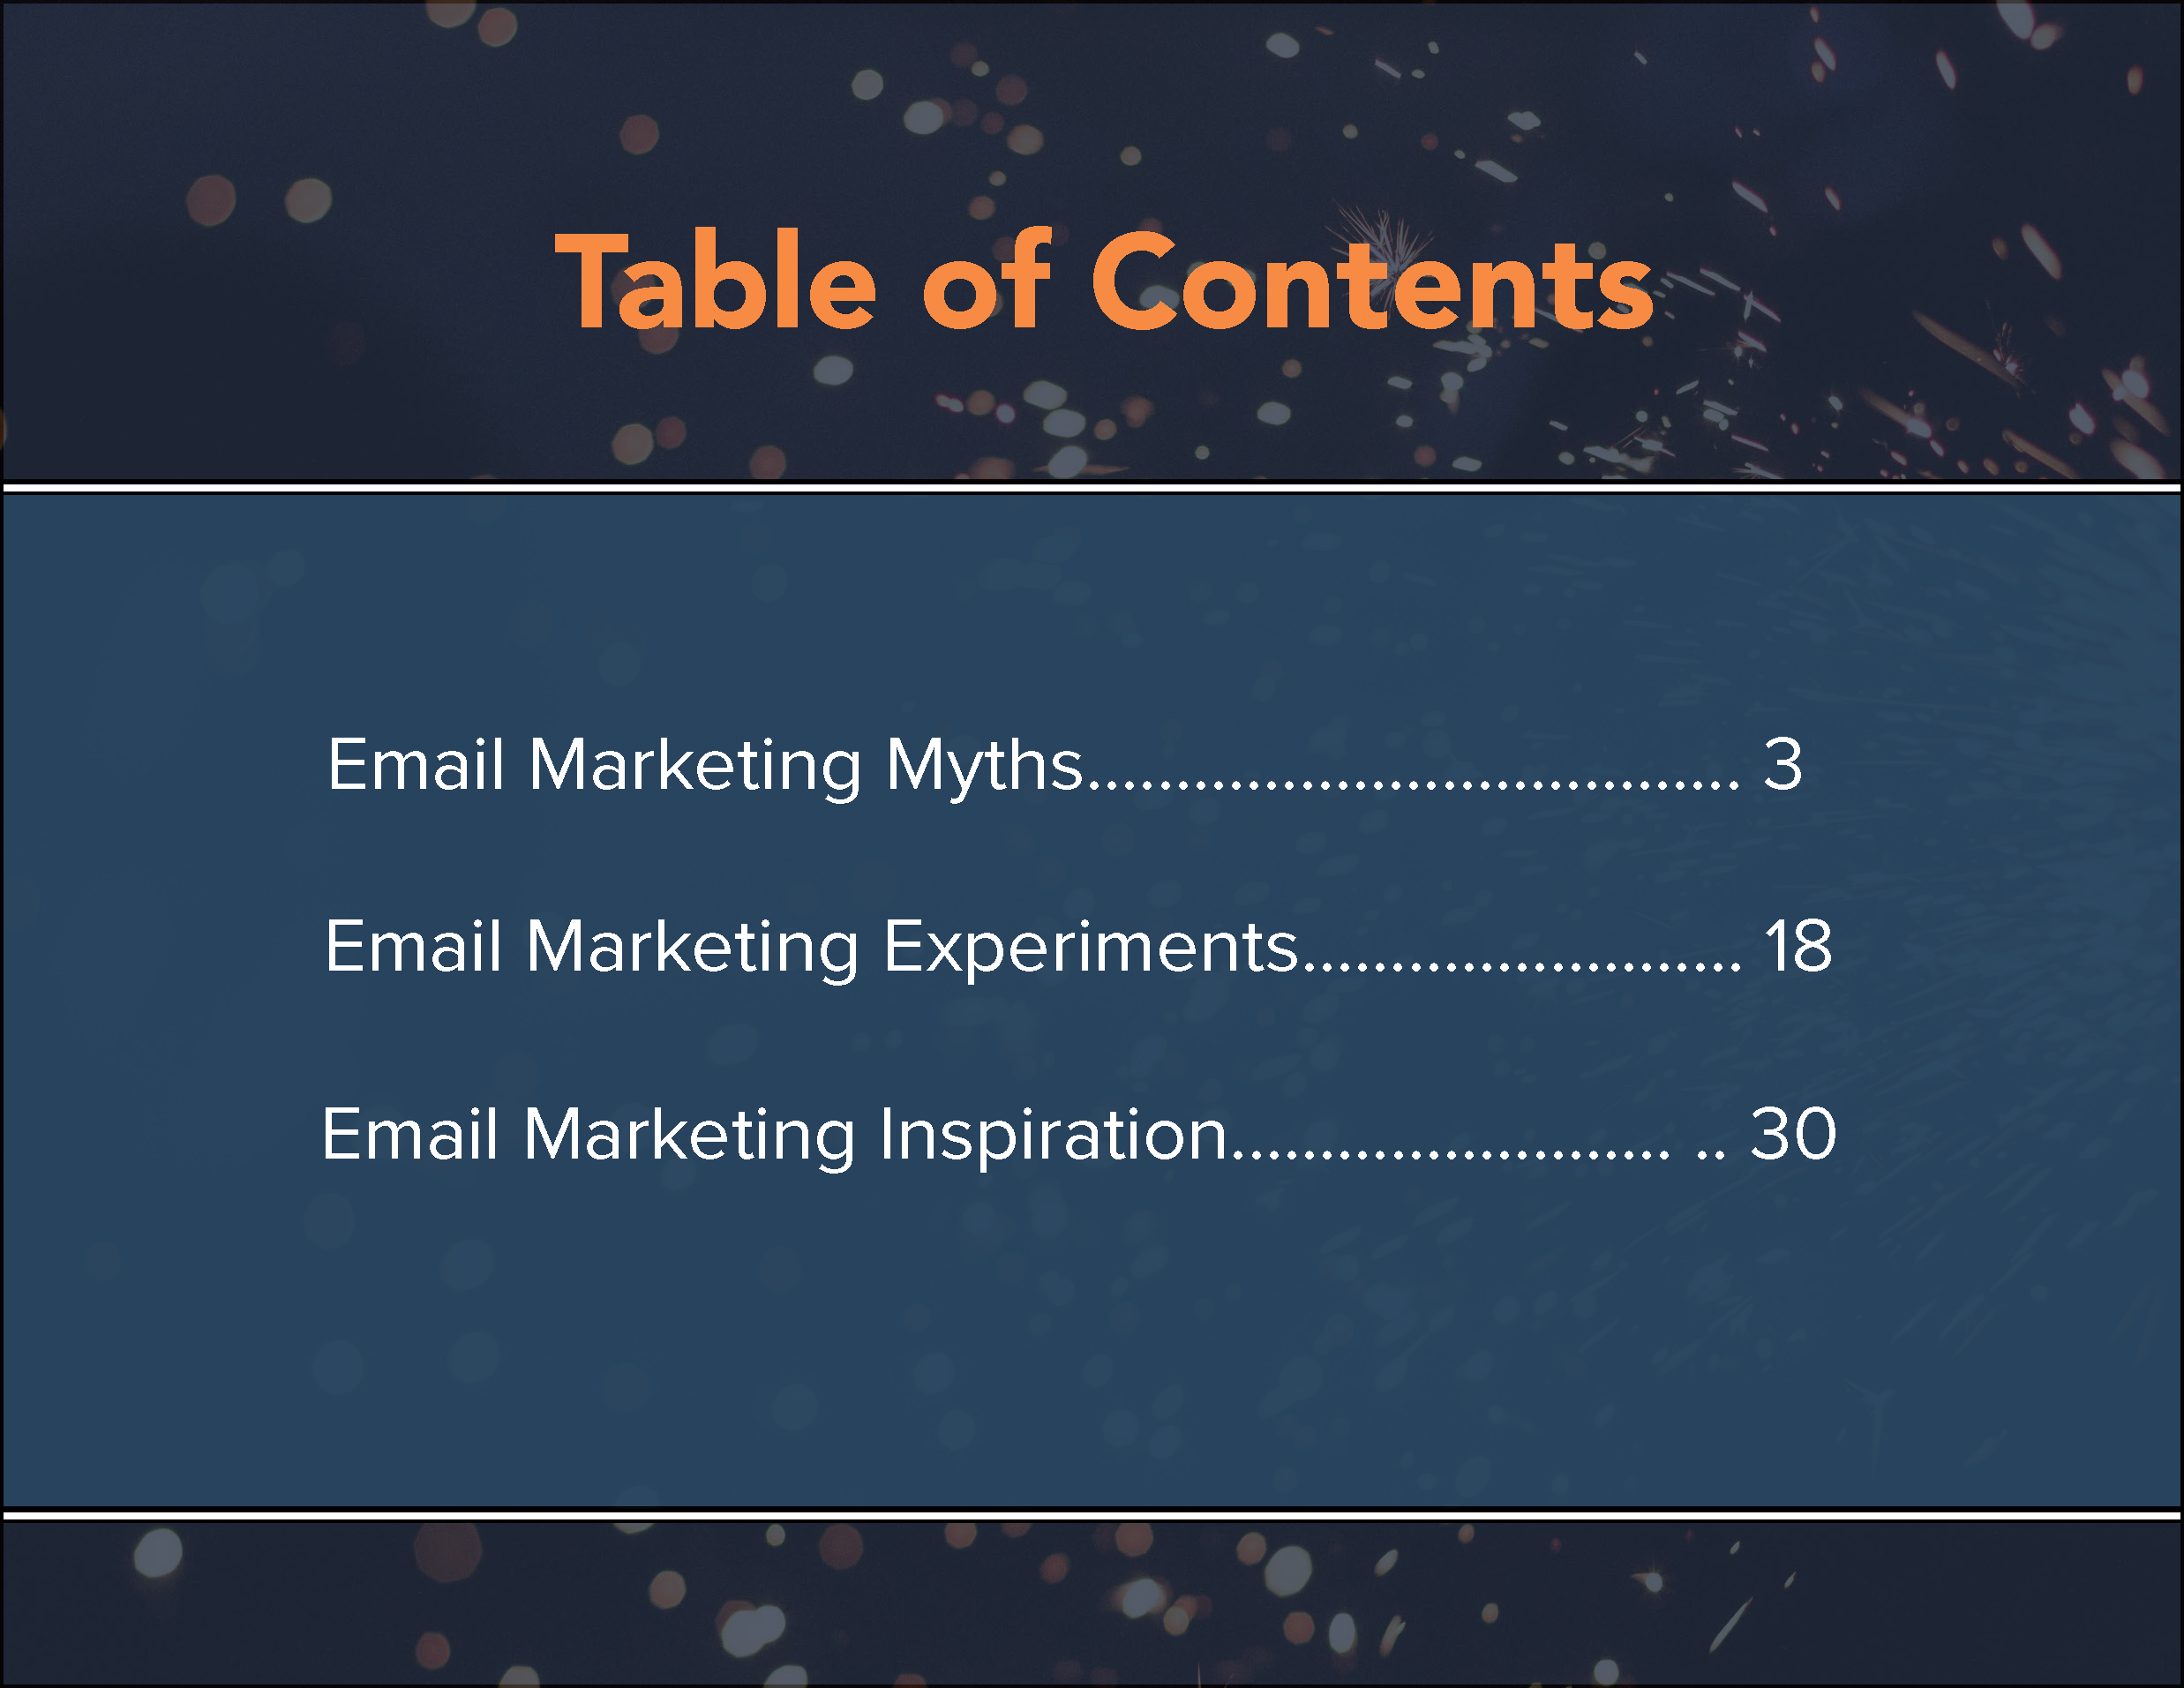 Email_Marketing Myths_Experiments_Inspiration Ebook_2.png